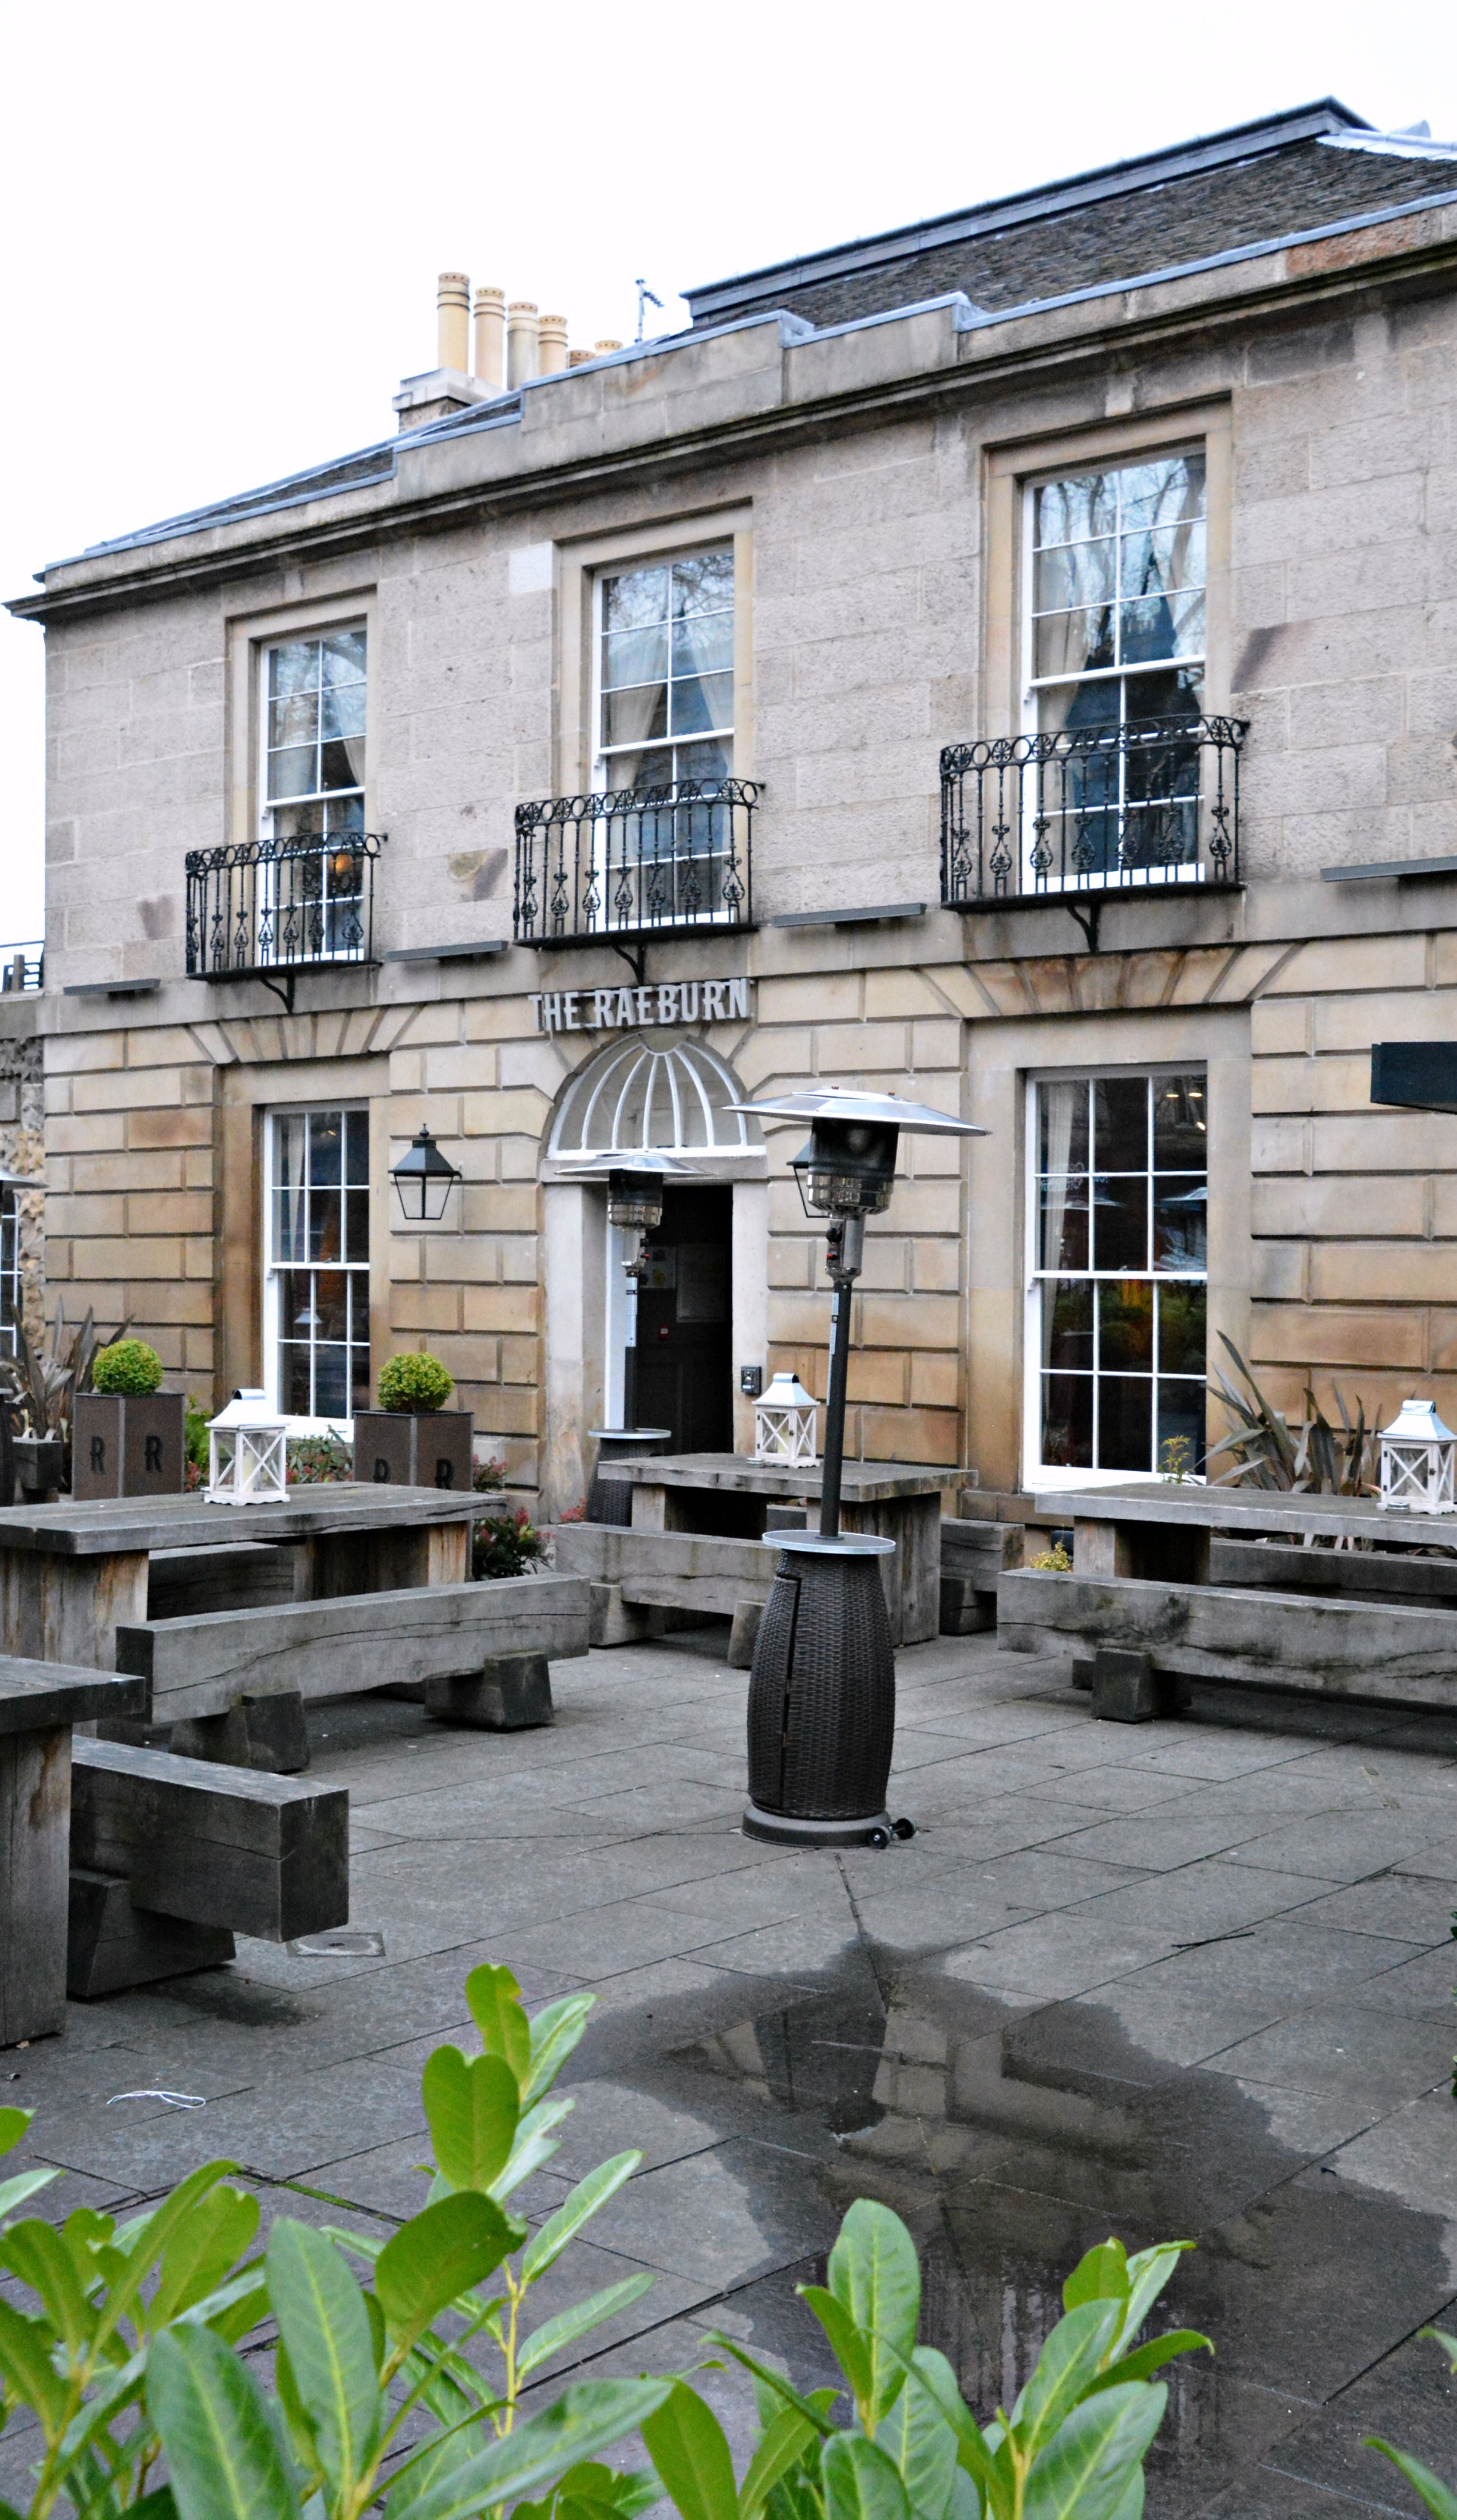 Edinburgh Stockbridge Raeburn Hotel And Restaurant Blisscomp Travel